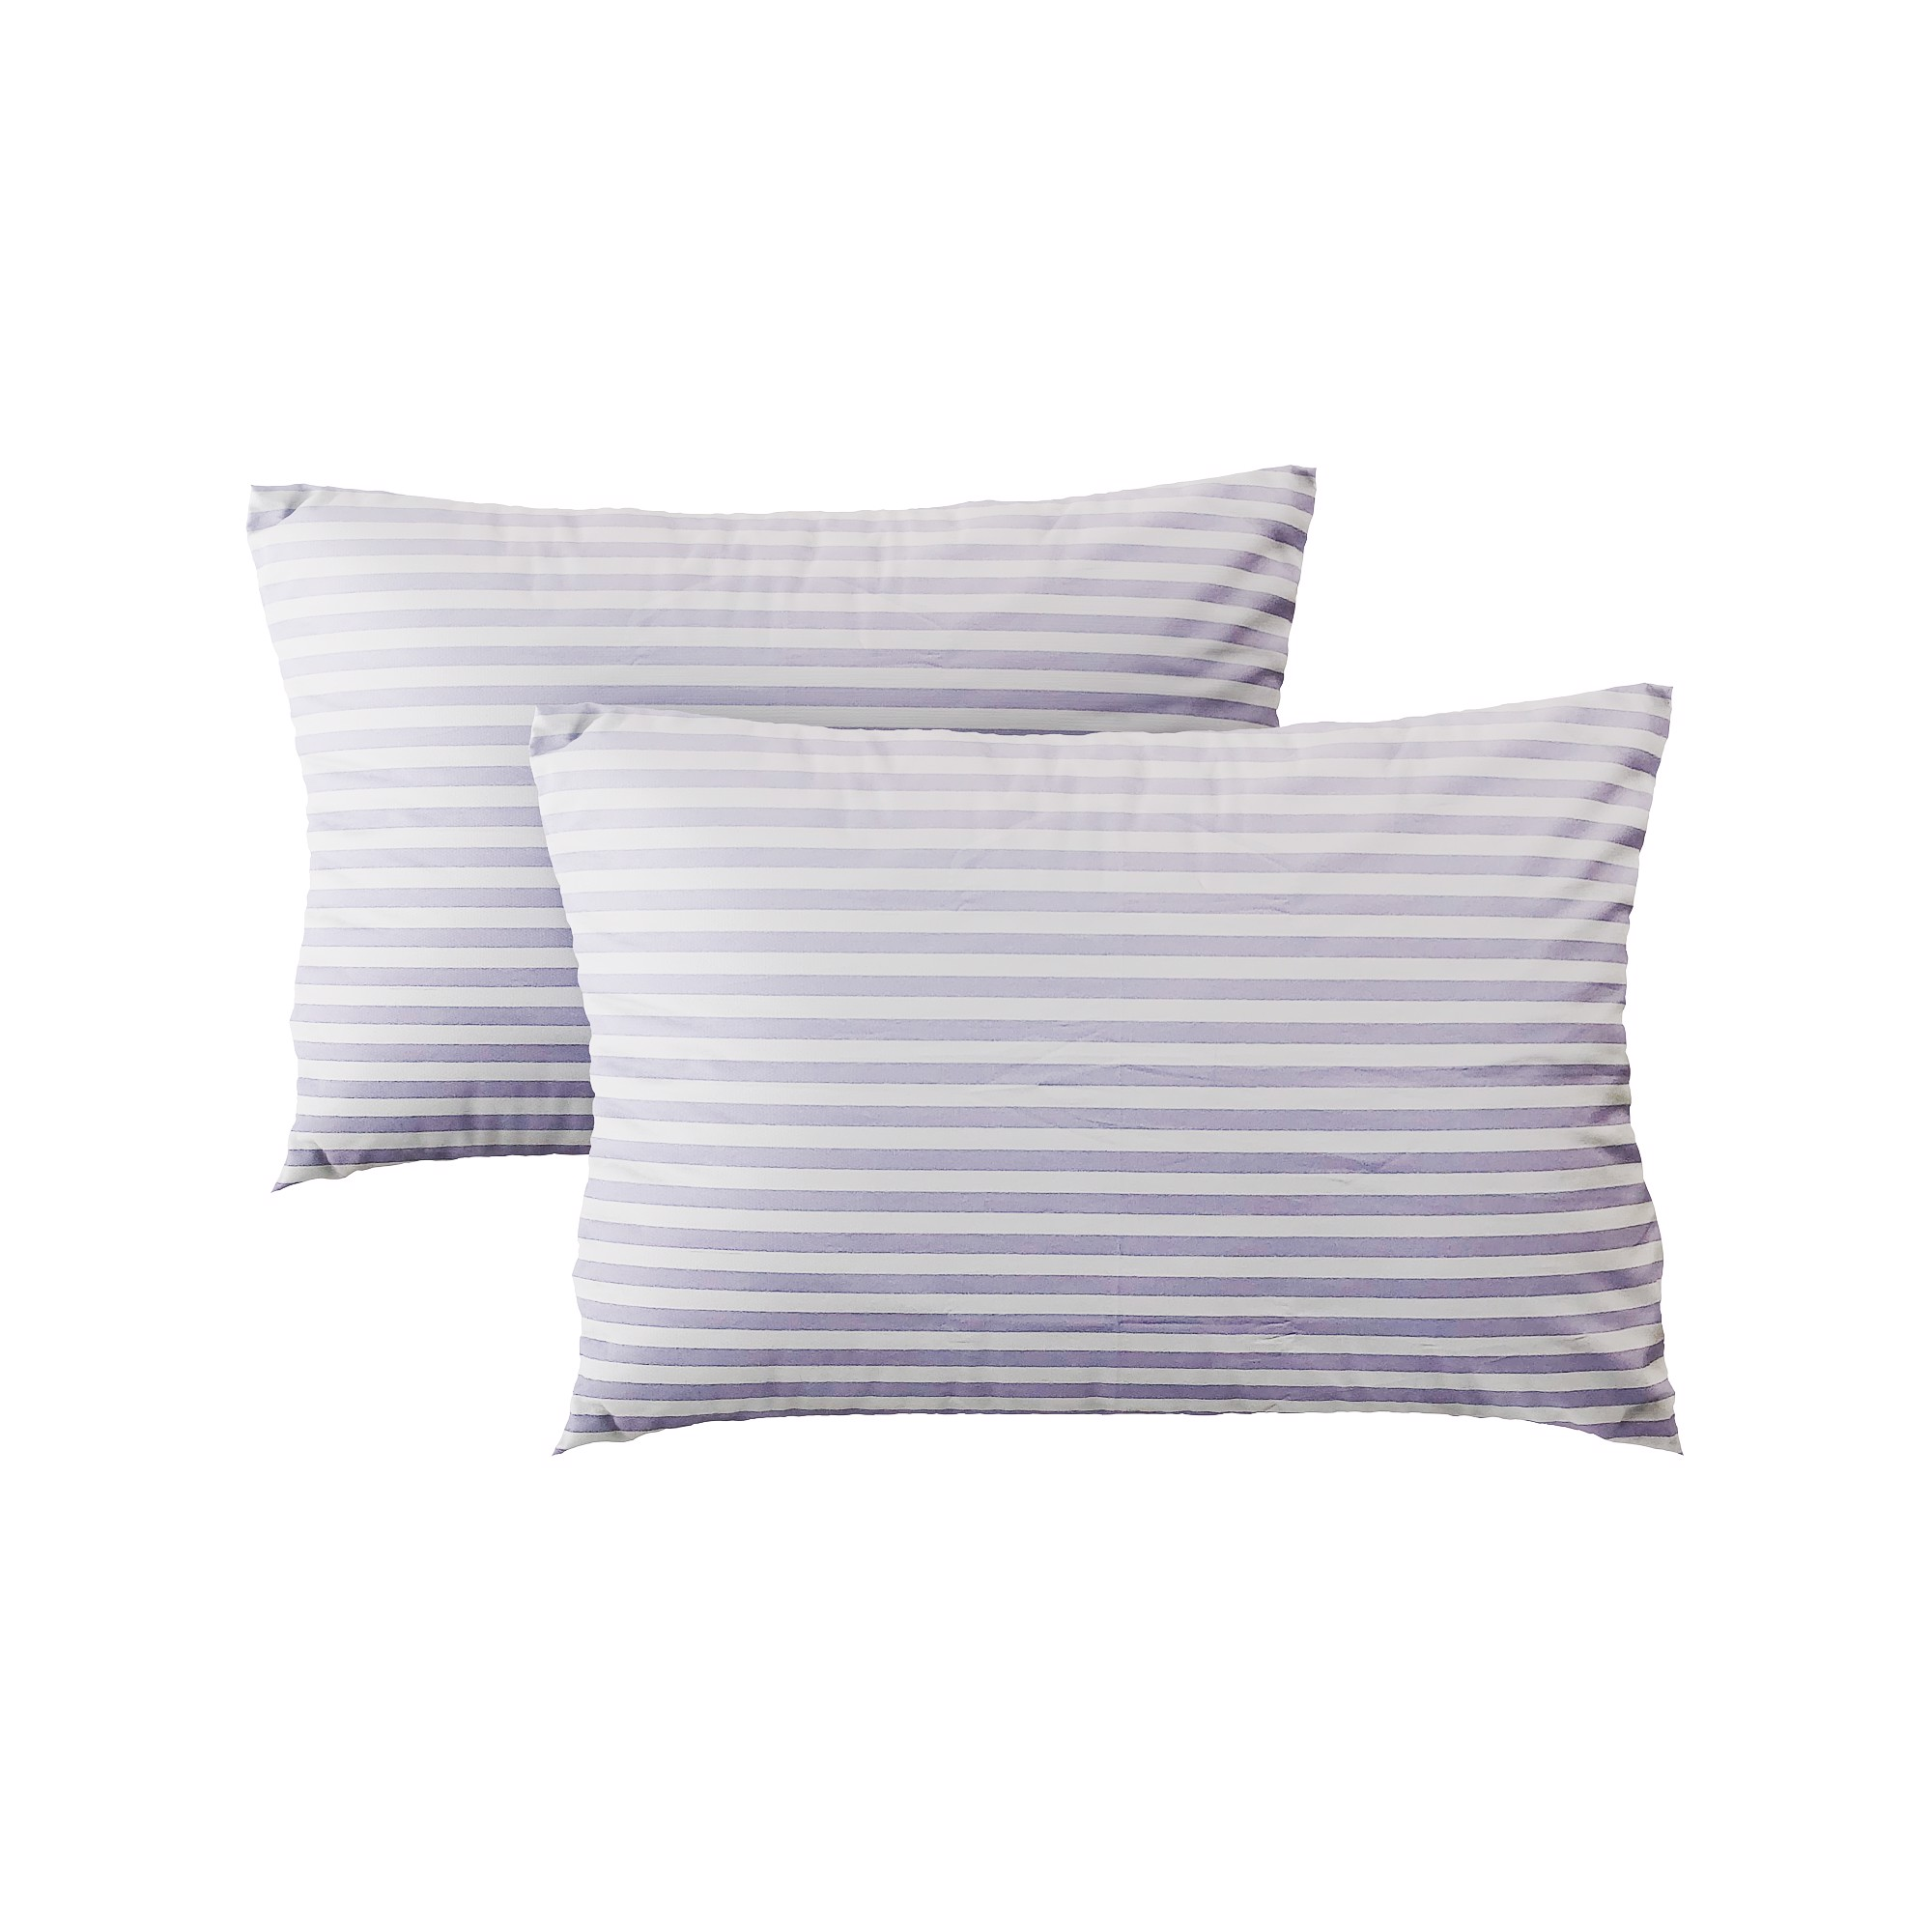 Pillow case 395 Purple white stripes (2pcs)